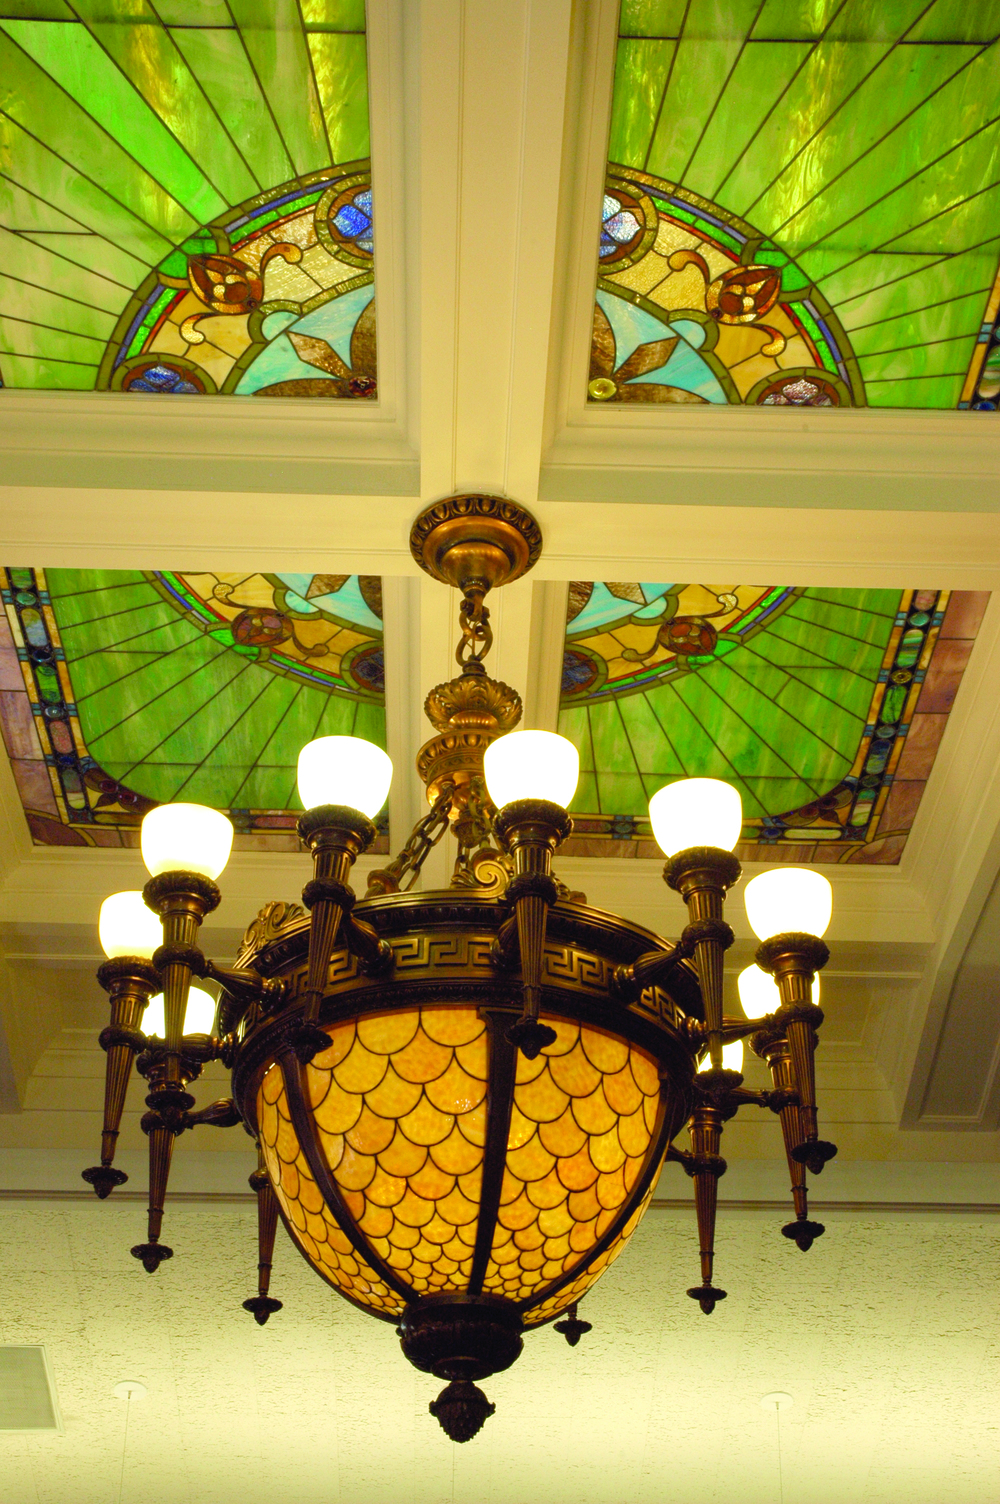 The Supreme Court chandelier in Room 302 is one of the oldest and most elaborate chandeliers in the Capitol and hung beneath the stained glass lay-light in the middle of the hearing room.